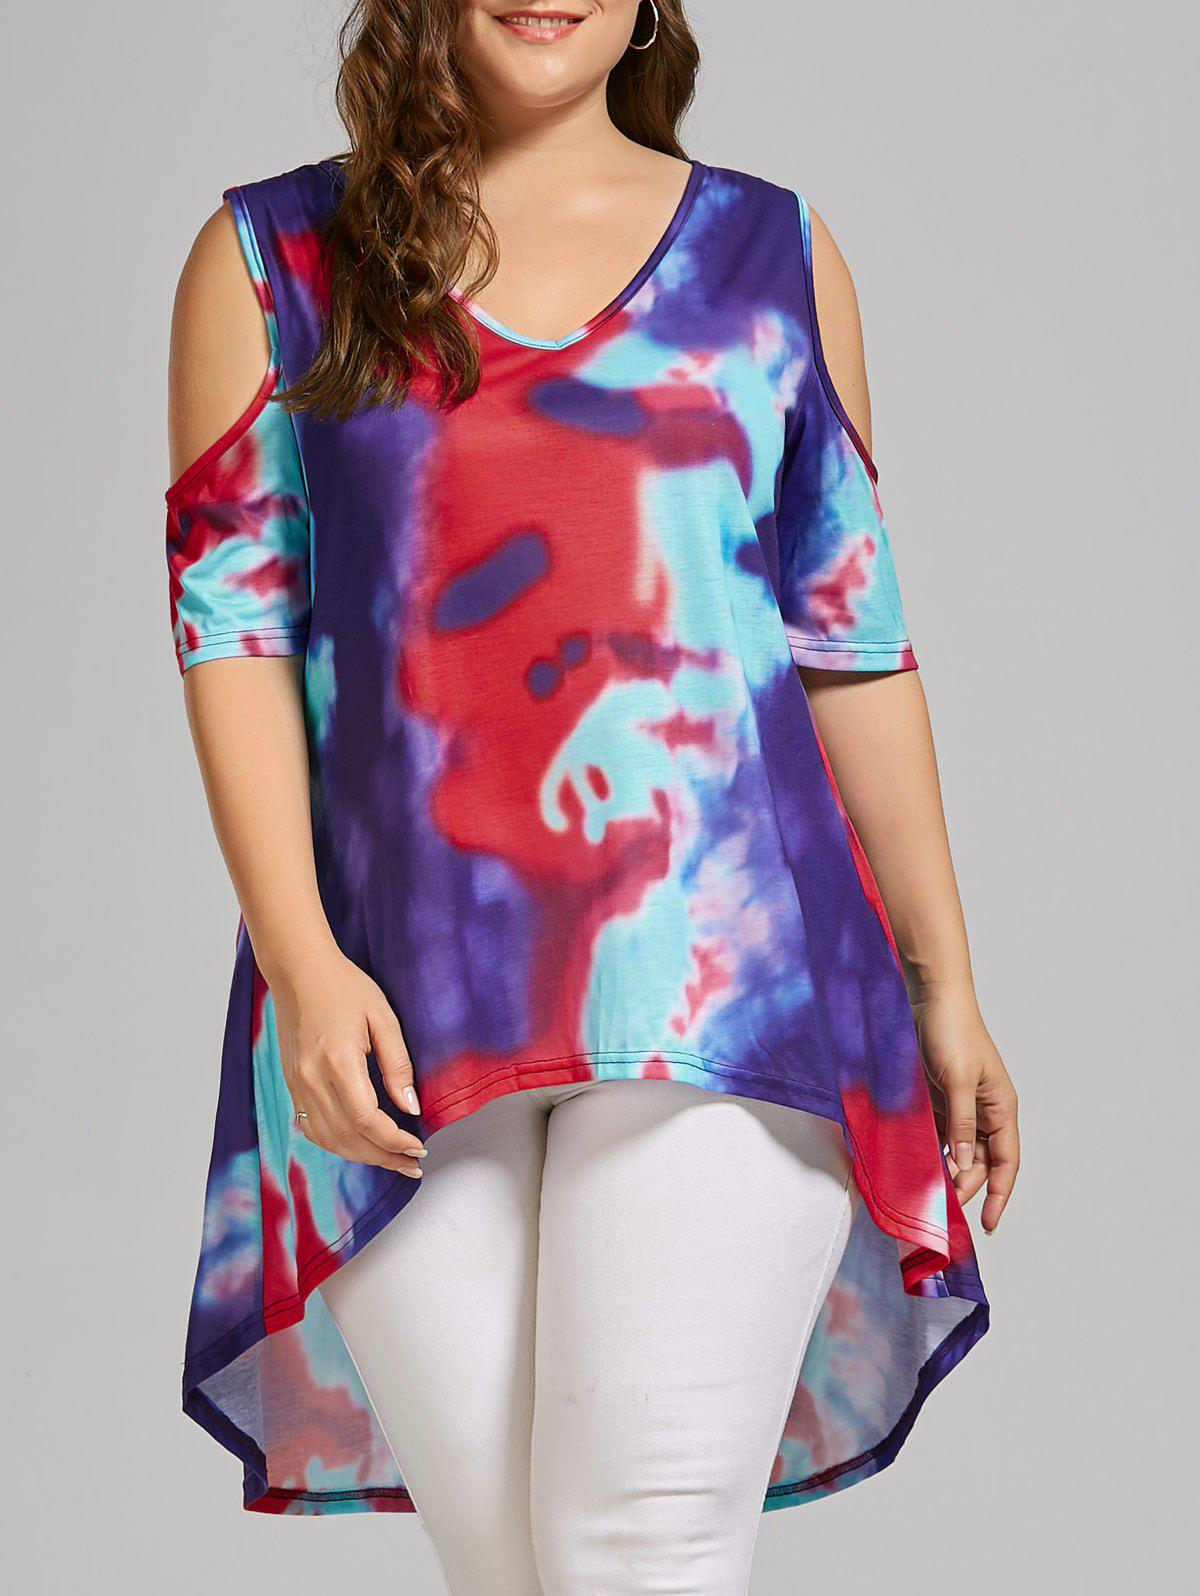 Plus Size Tie Dye Cold Shoulder High Low T-shirt - multicolorCOLOR 4XL